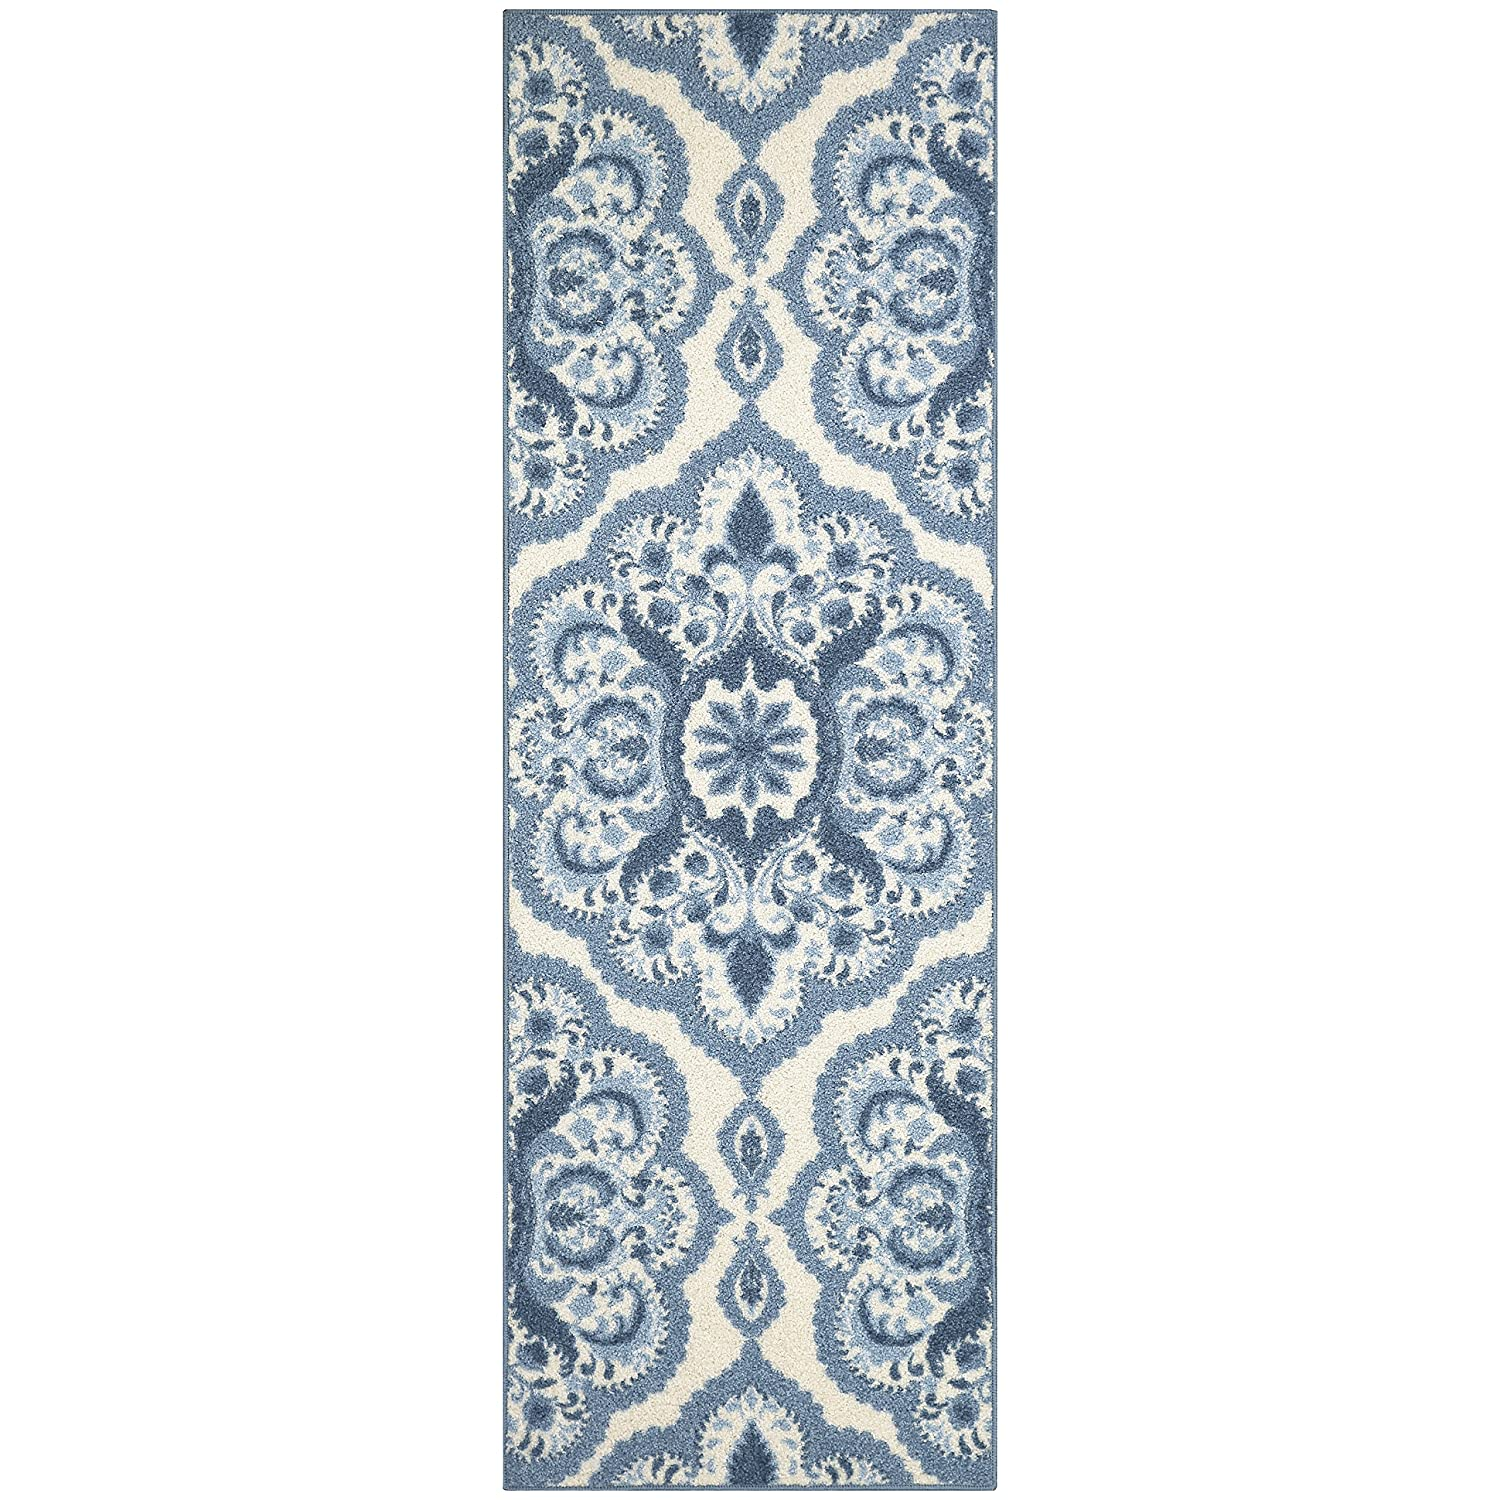 Maples Rugs Kitchen Rug - Vivian 2 x 3 Non Skid Small Accent Throw Rugs [Made in USA] for Entryway and Bedroom, 1'8 x 2'10, Blue 1'8 x 2'10 Kitchen Rug -Vivian